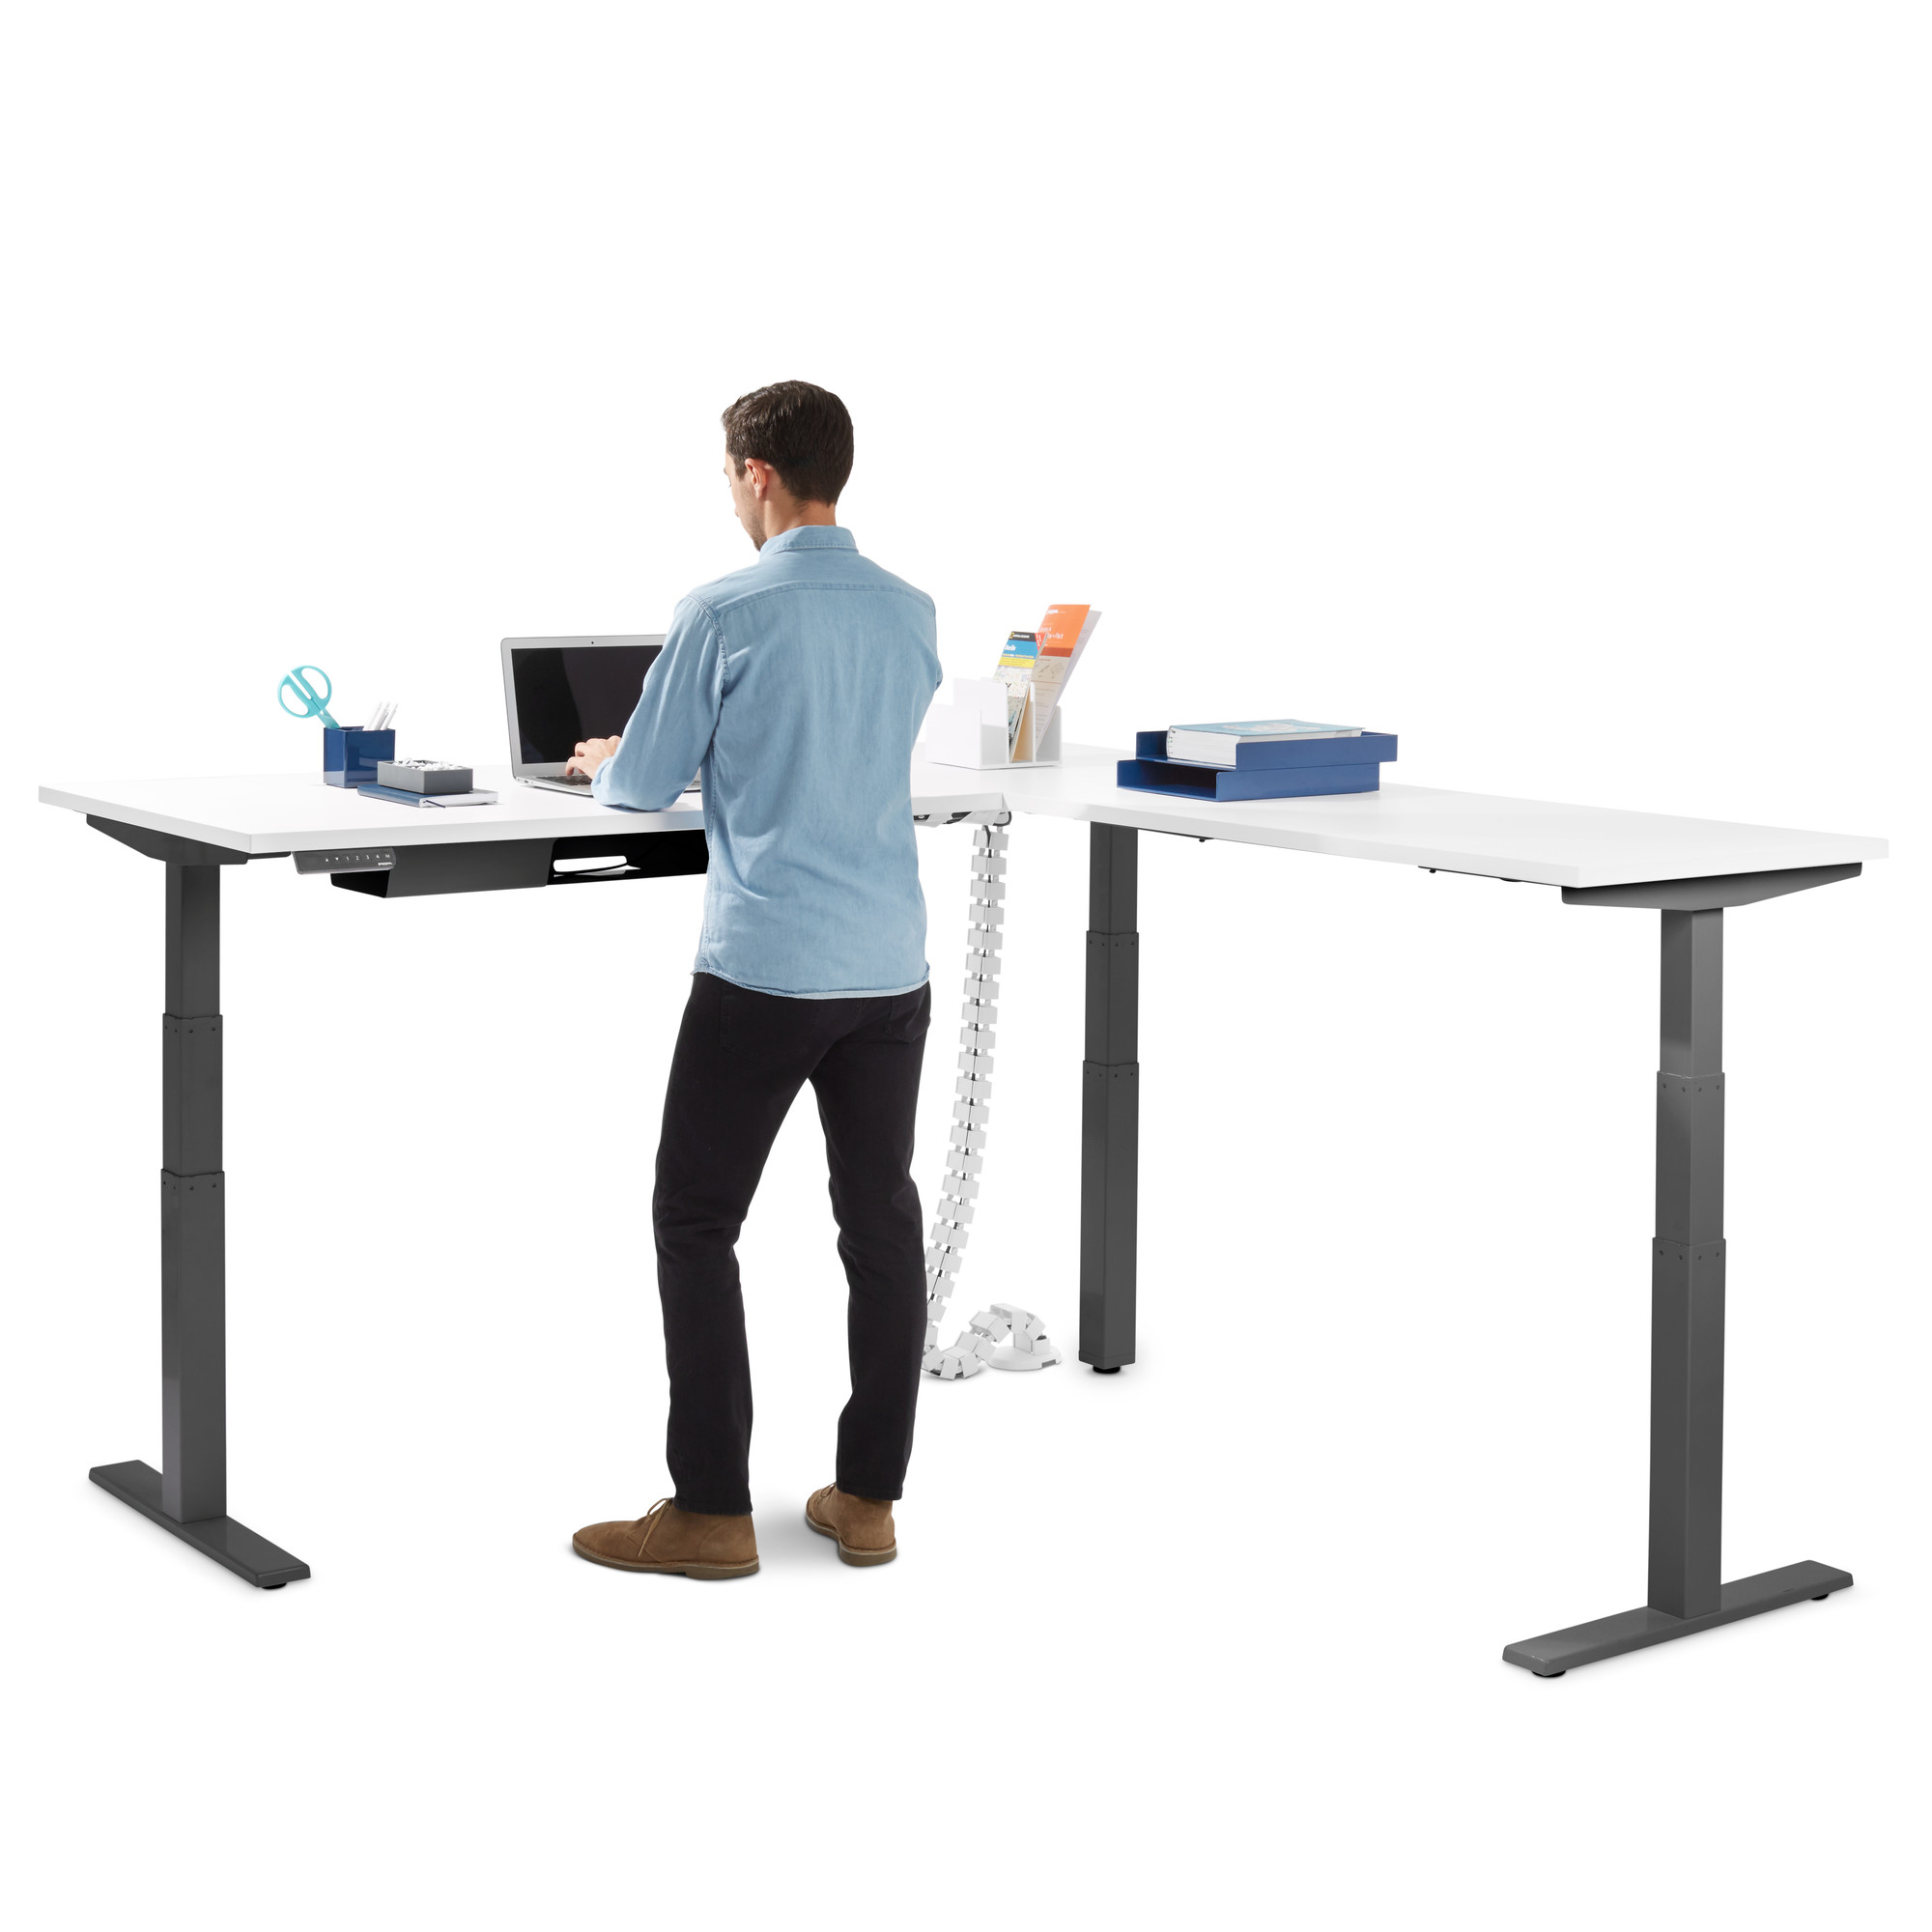 short height adjustable correll leg activity hayneedle rectangle desk correlleconolinemelaminetopshortlegadjustableheightactivitytablerectangle table product cfm top legs econoline master melamine